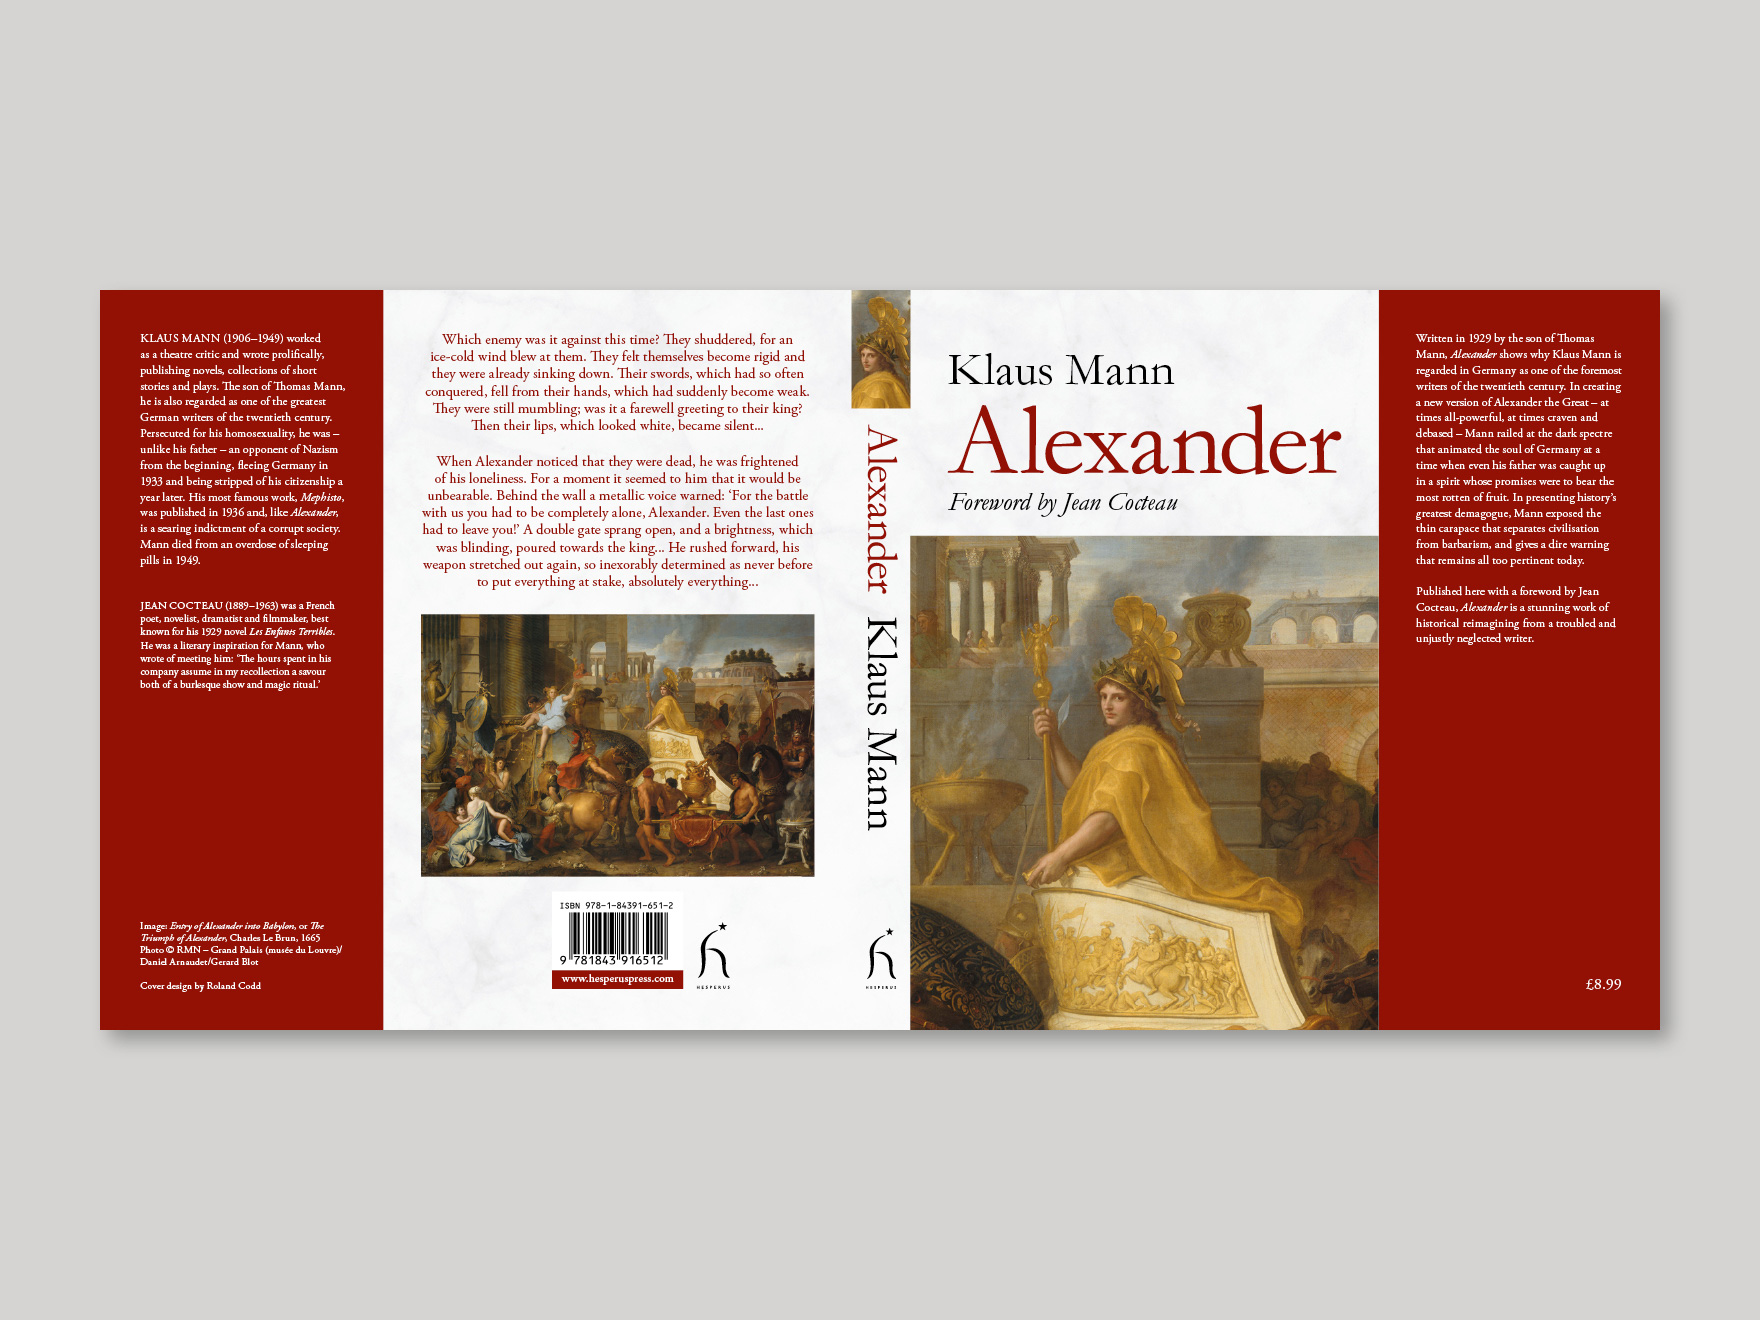 Full book cover for Alexander, showing the front, spine, back and flaps